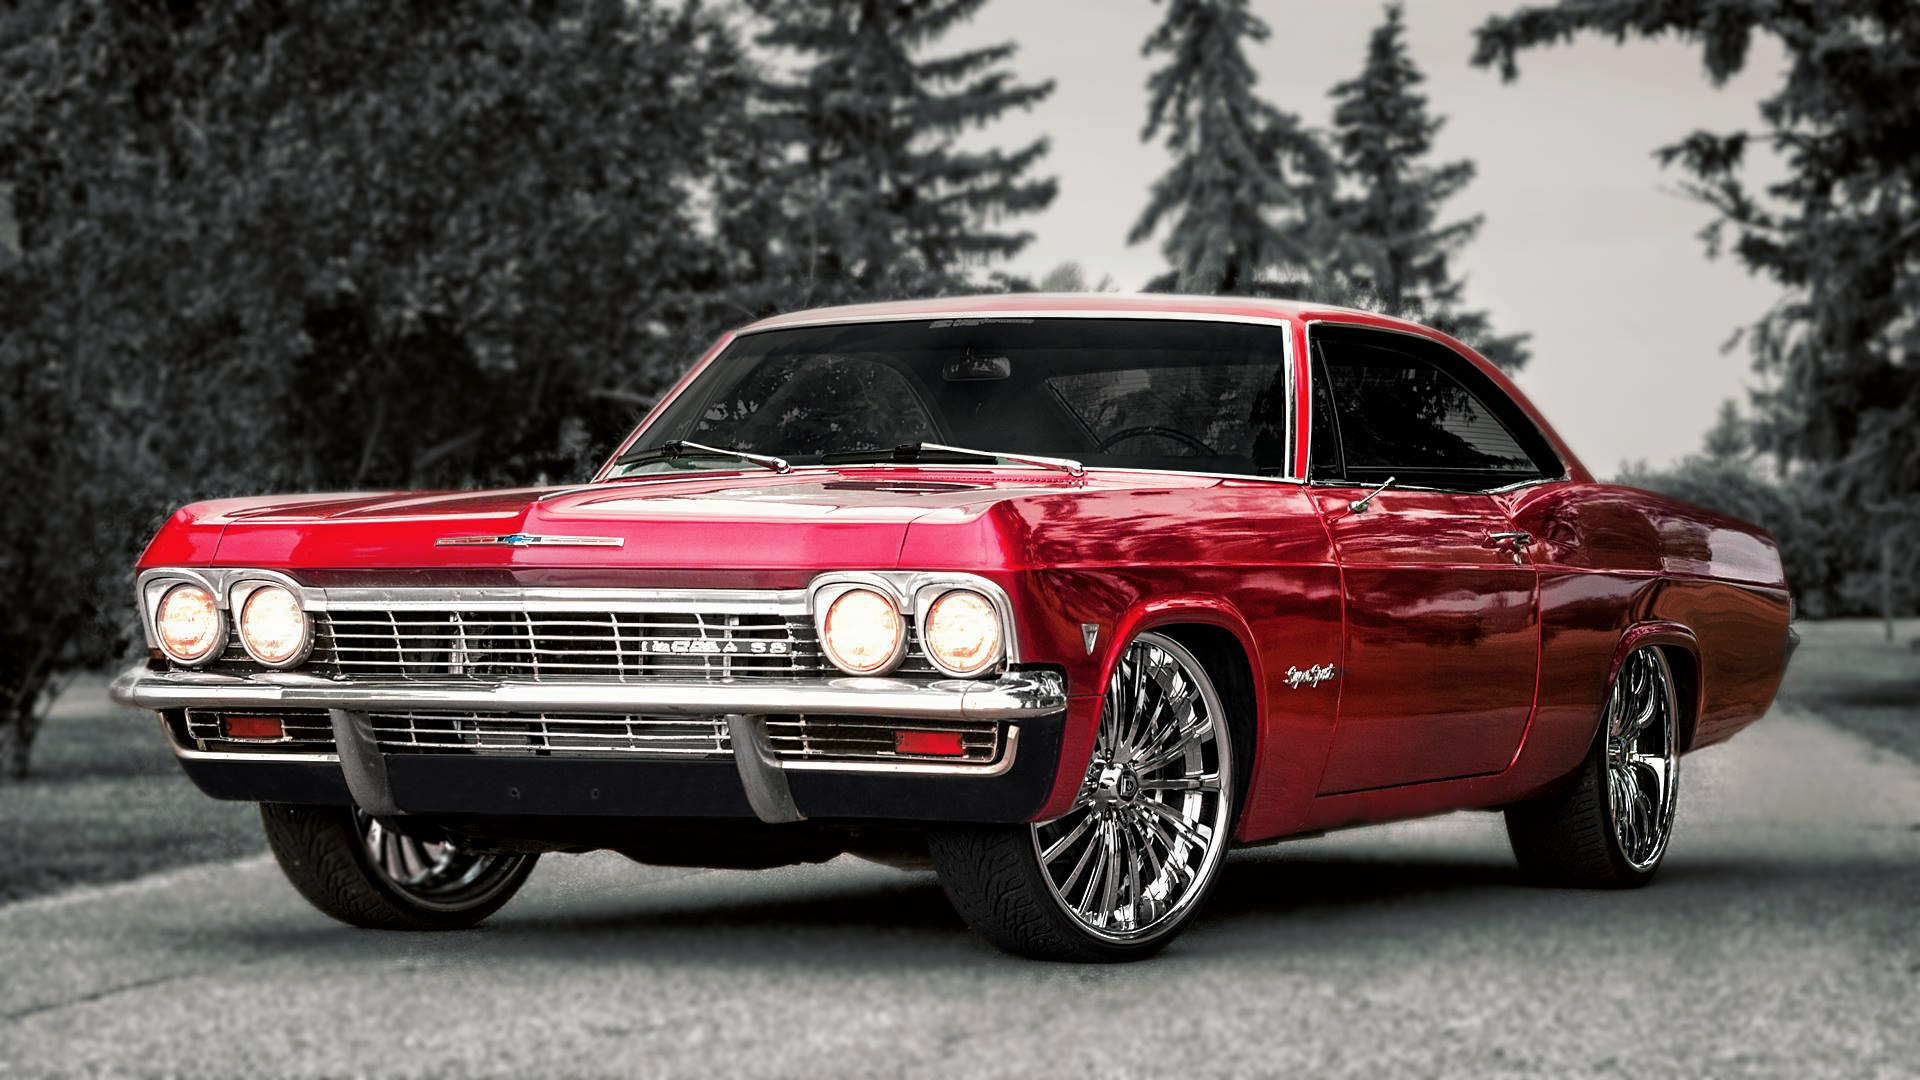 Gorgeous Chevrolet Impala Wallpaper Full HD Pictures 1920x1080